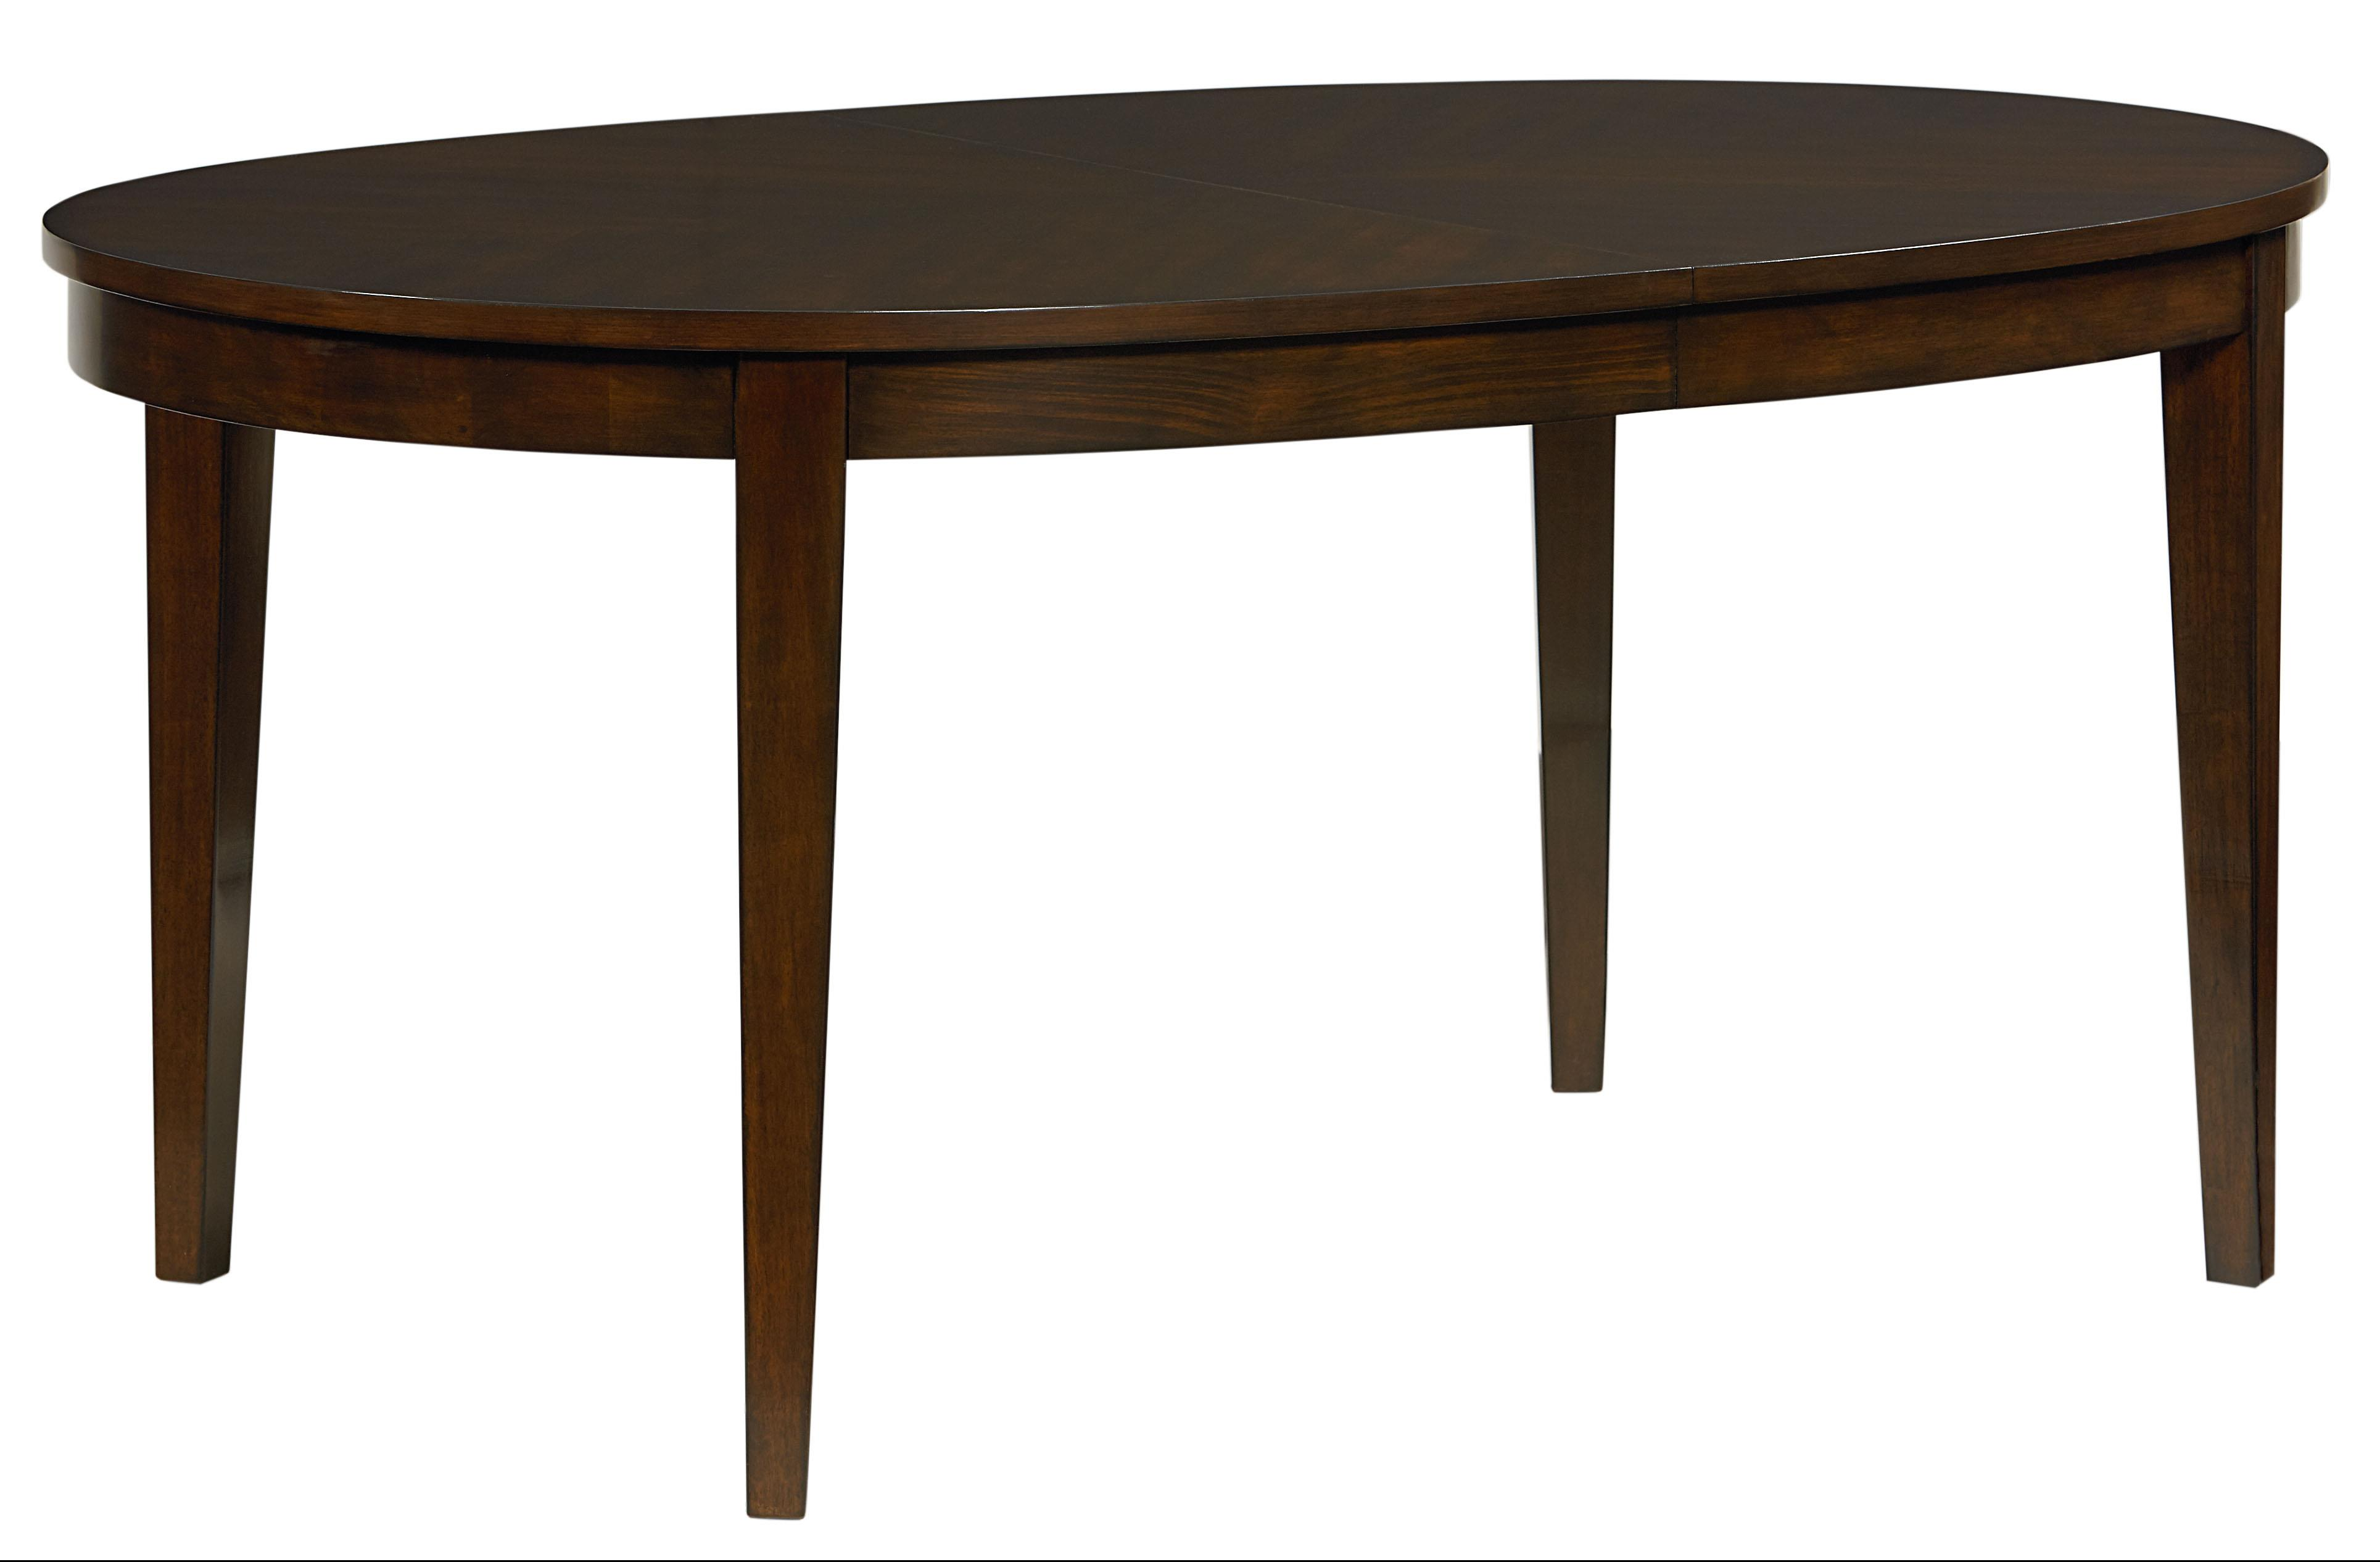 Standard furniture serenity oval dining table with 18 for Kitchen table with leaf